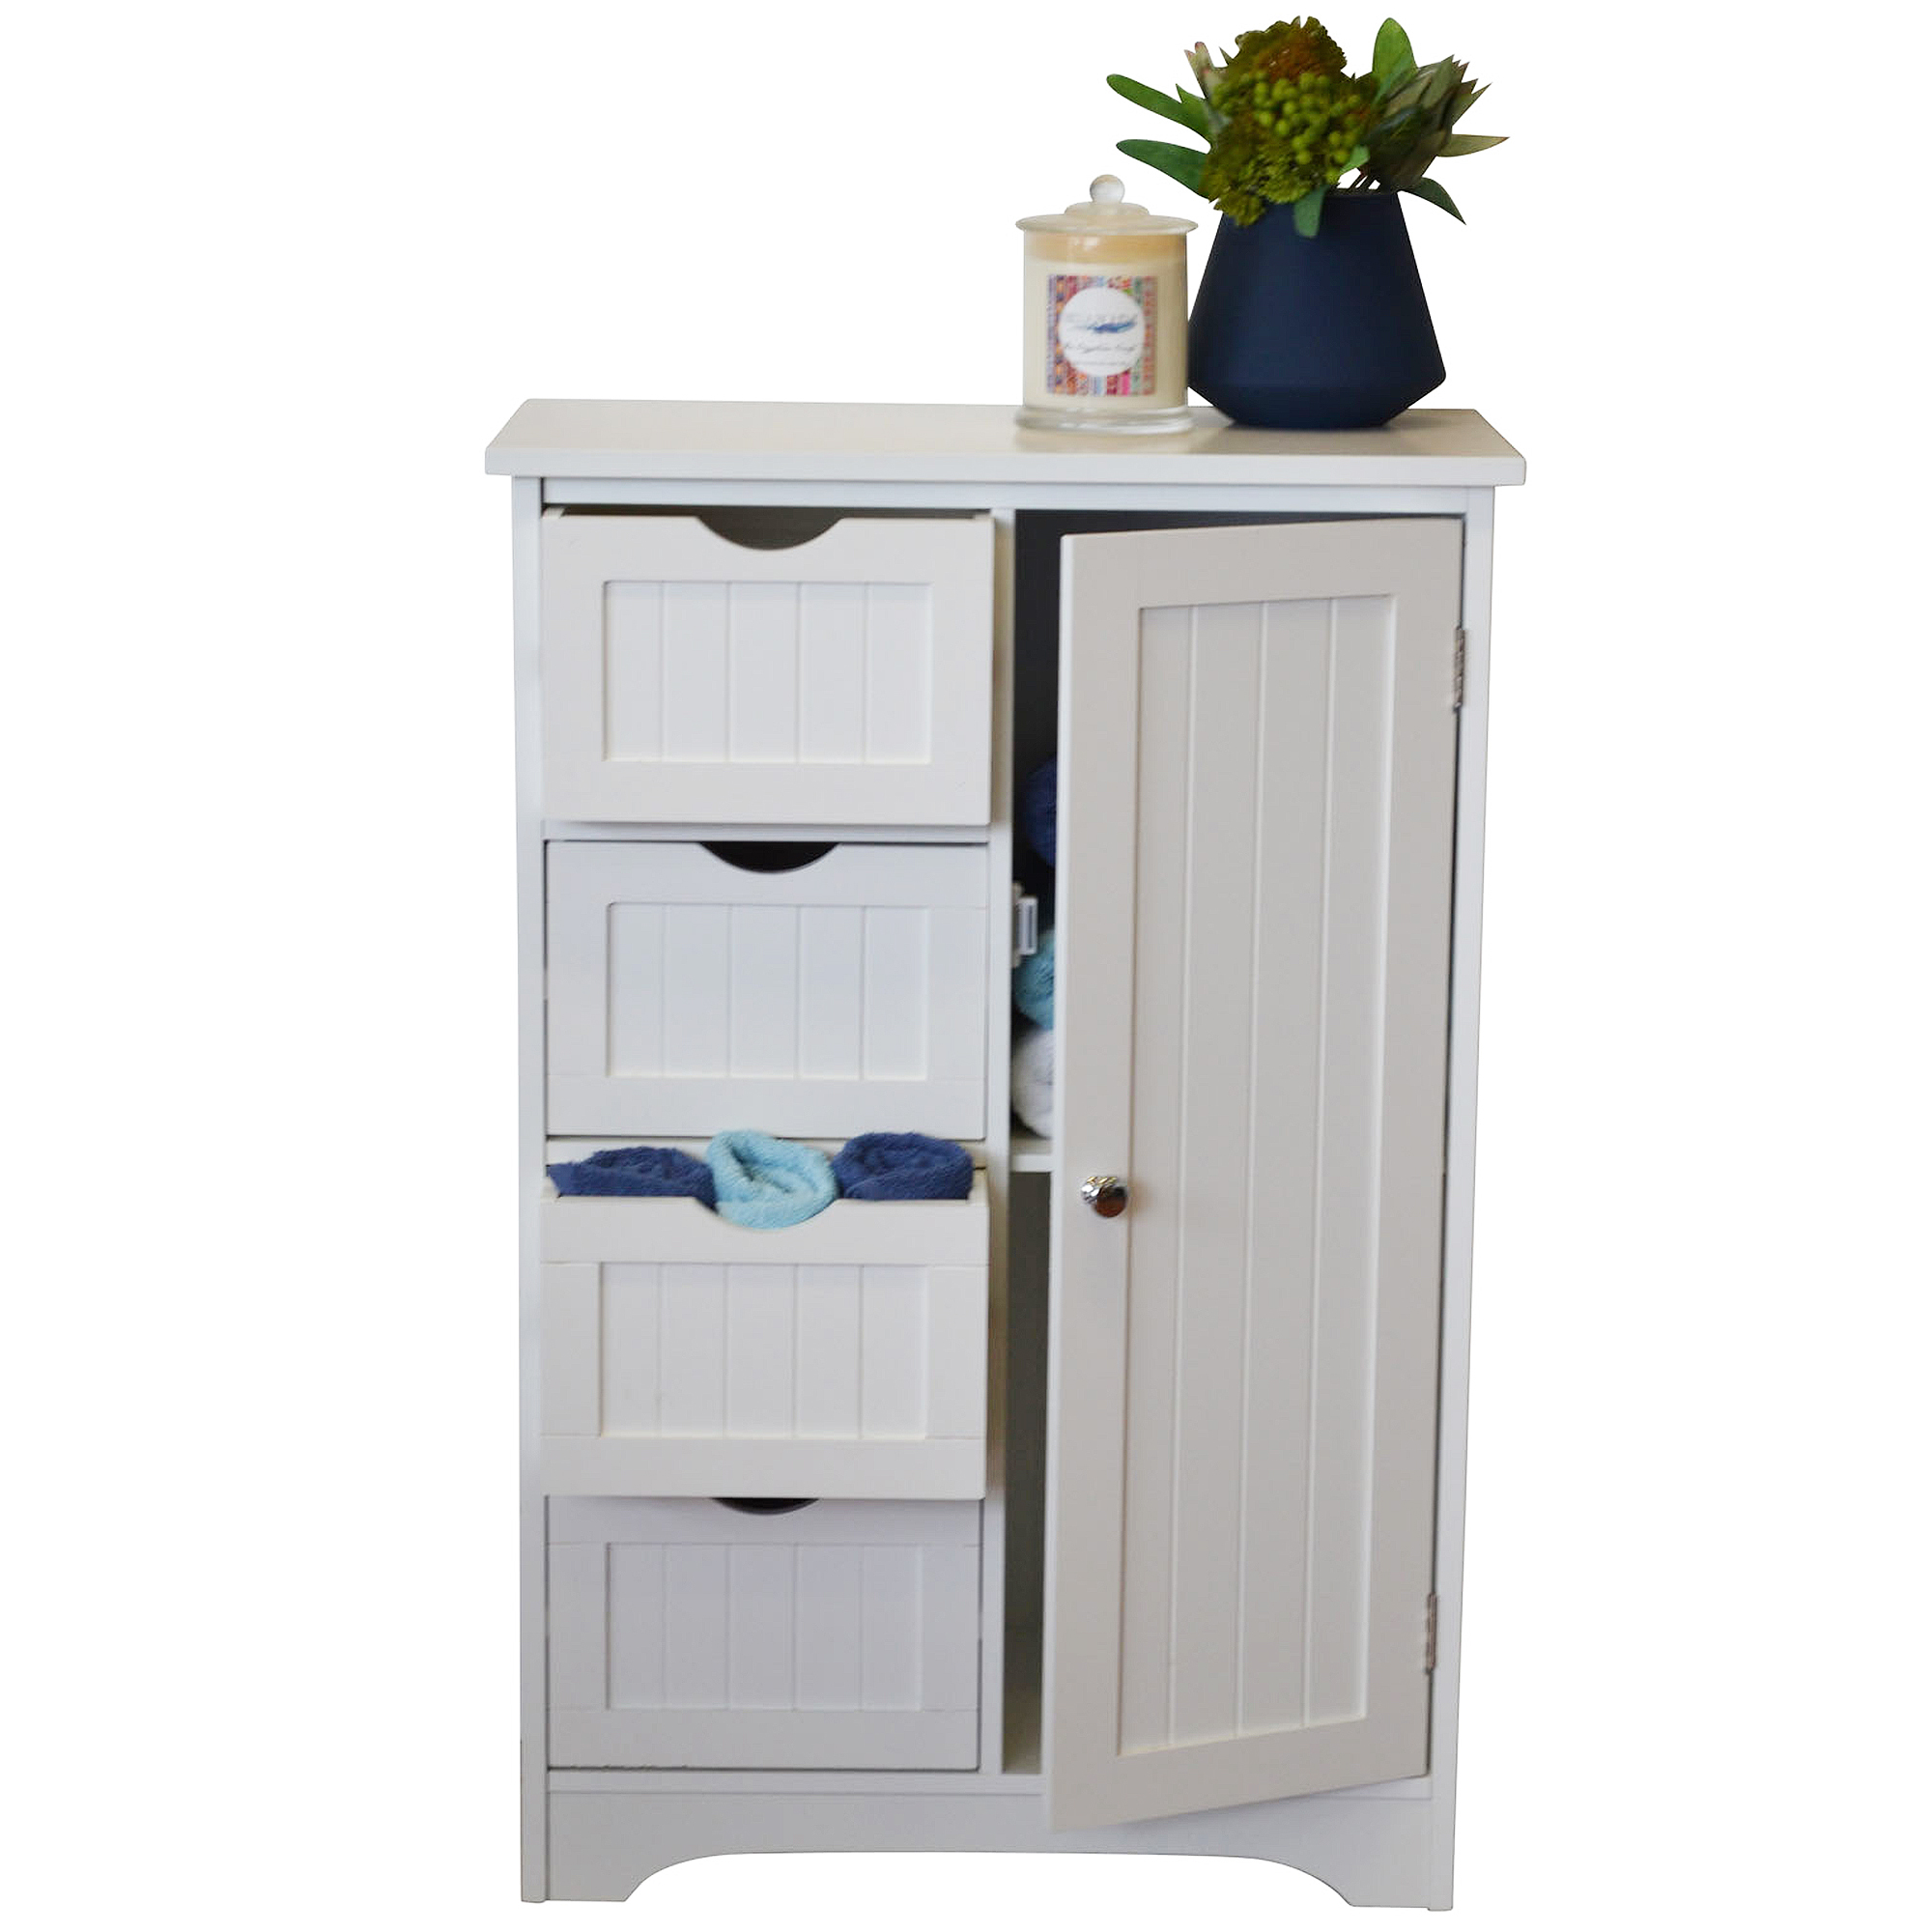 New odessa multi purpose bathroom cabinet in home for Bathroom cabinets ebay australia